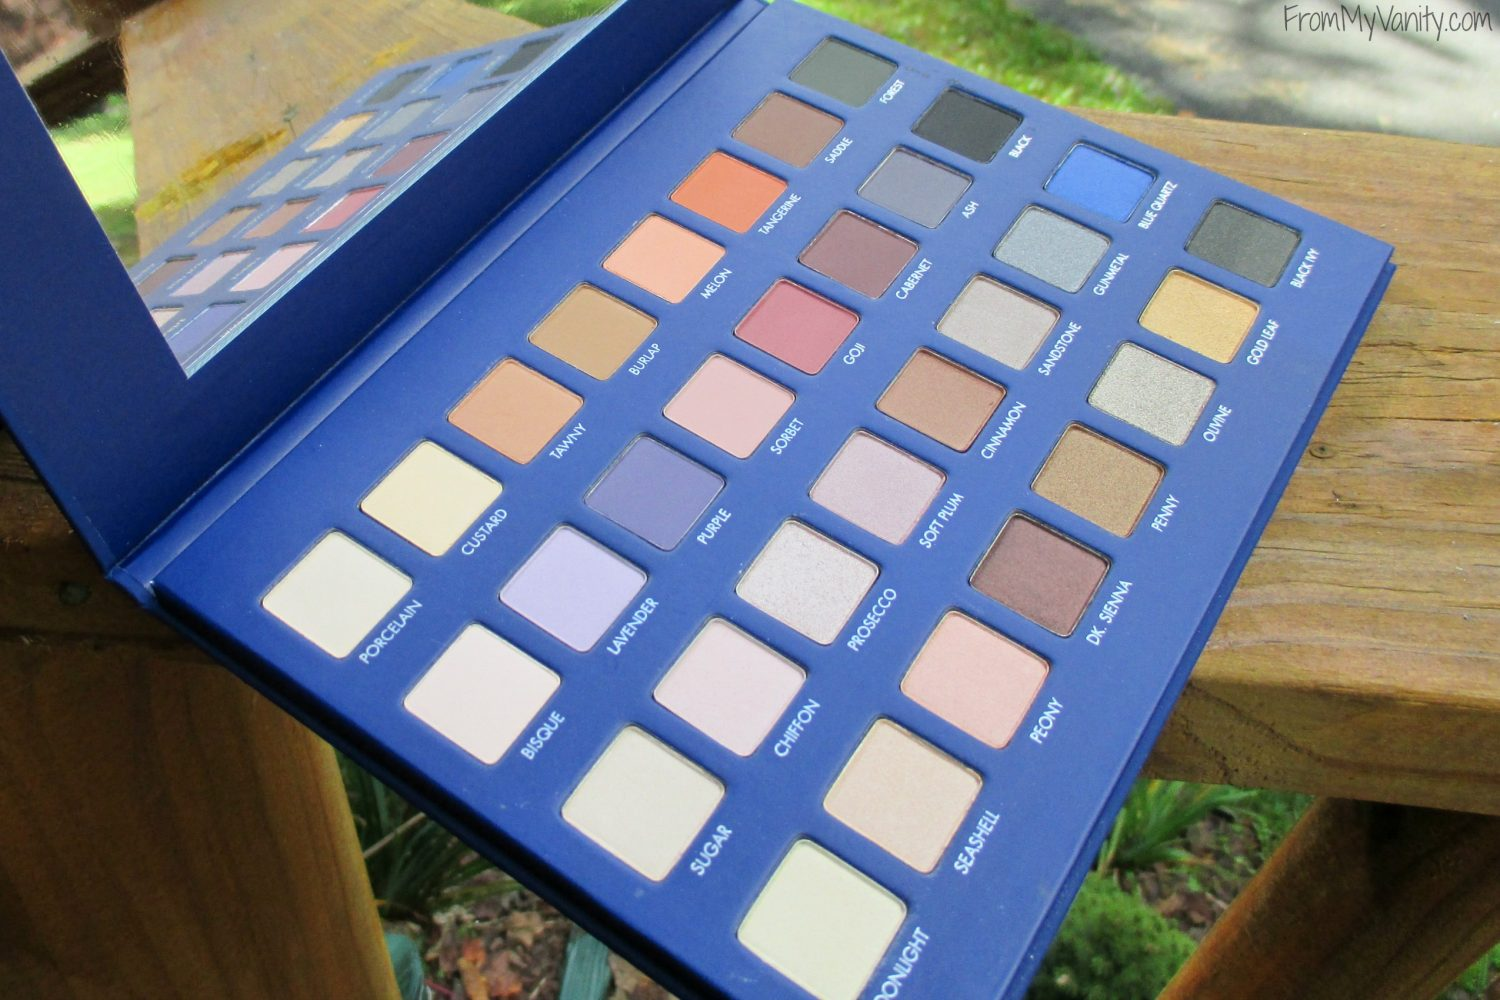 LORAC Mega Pro 2 Eyeshadow Palette // Review, Swatches, & Eye Looks // Opened Palette // #LORACCosmetics #MegaPro2 FromMyVanity.com